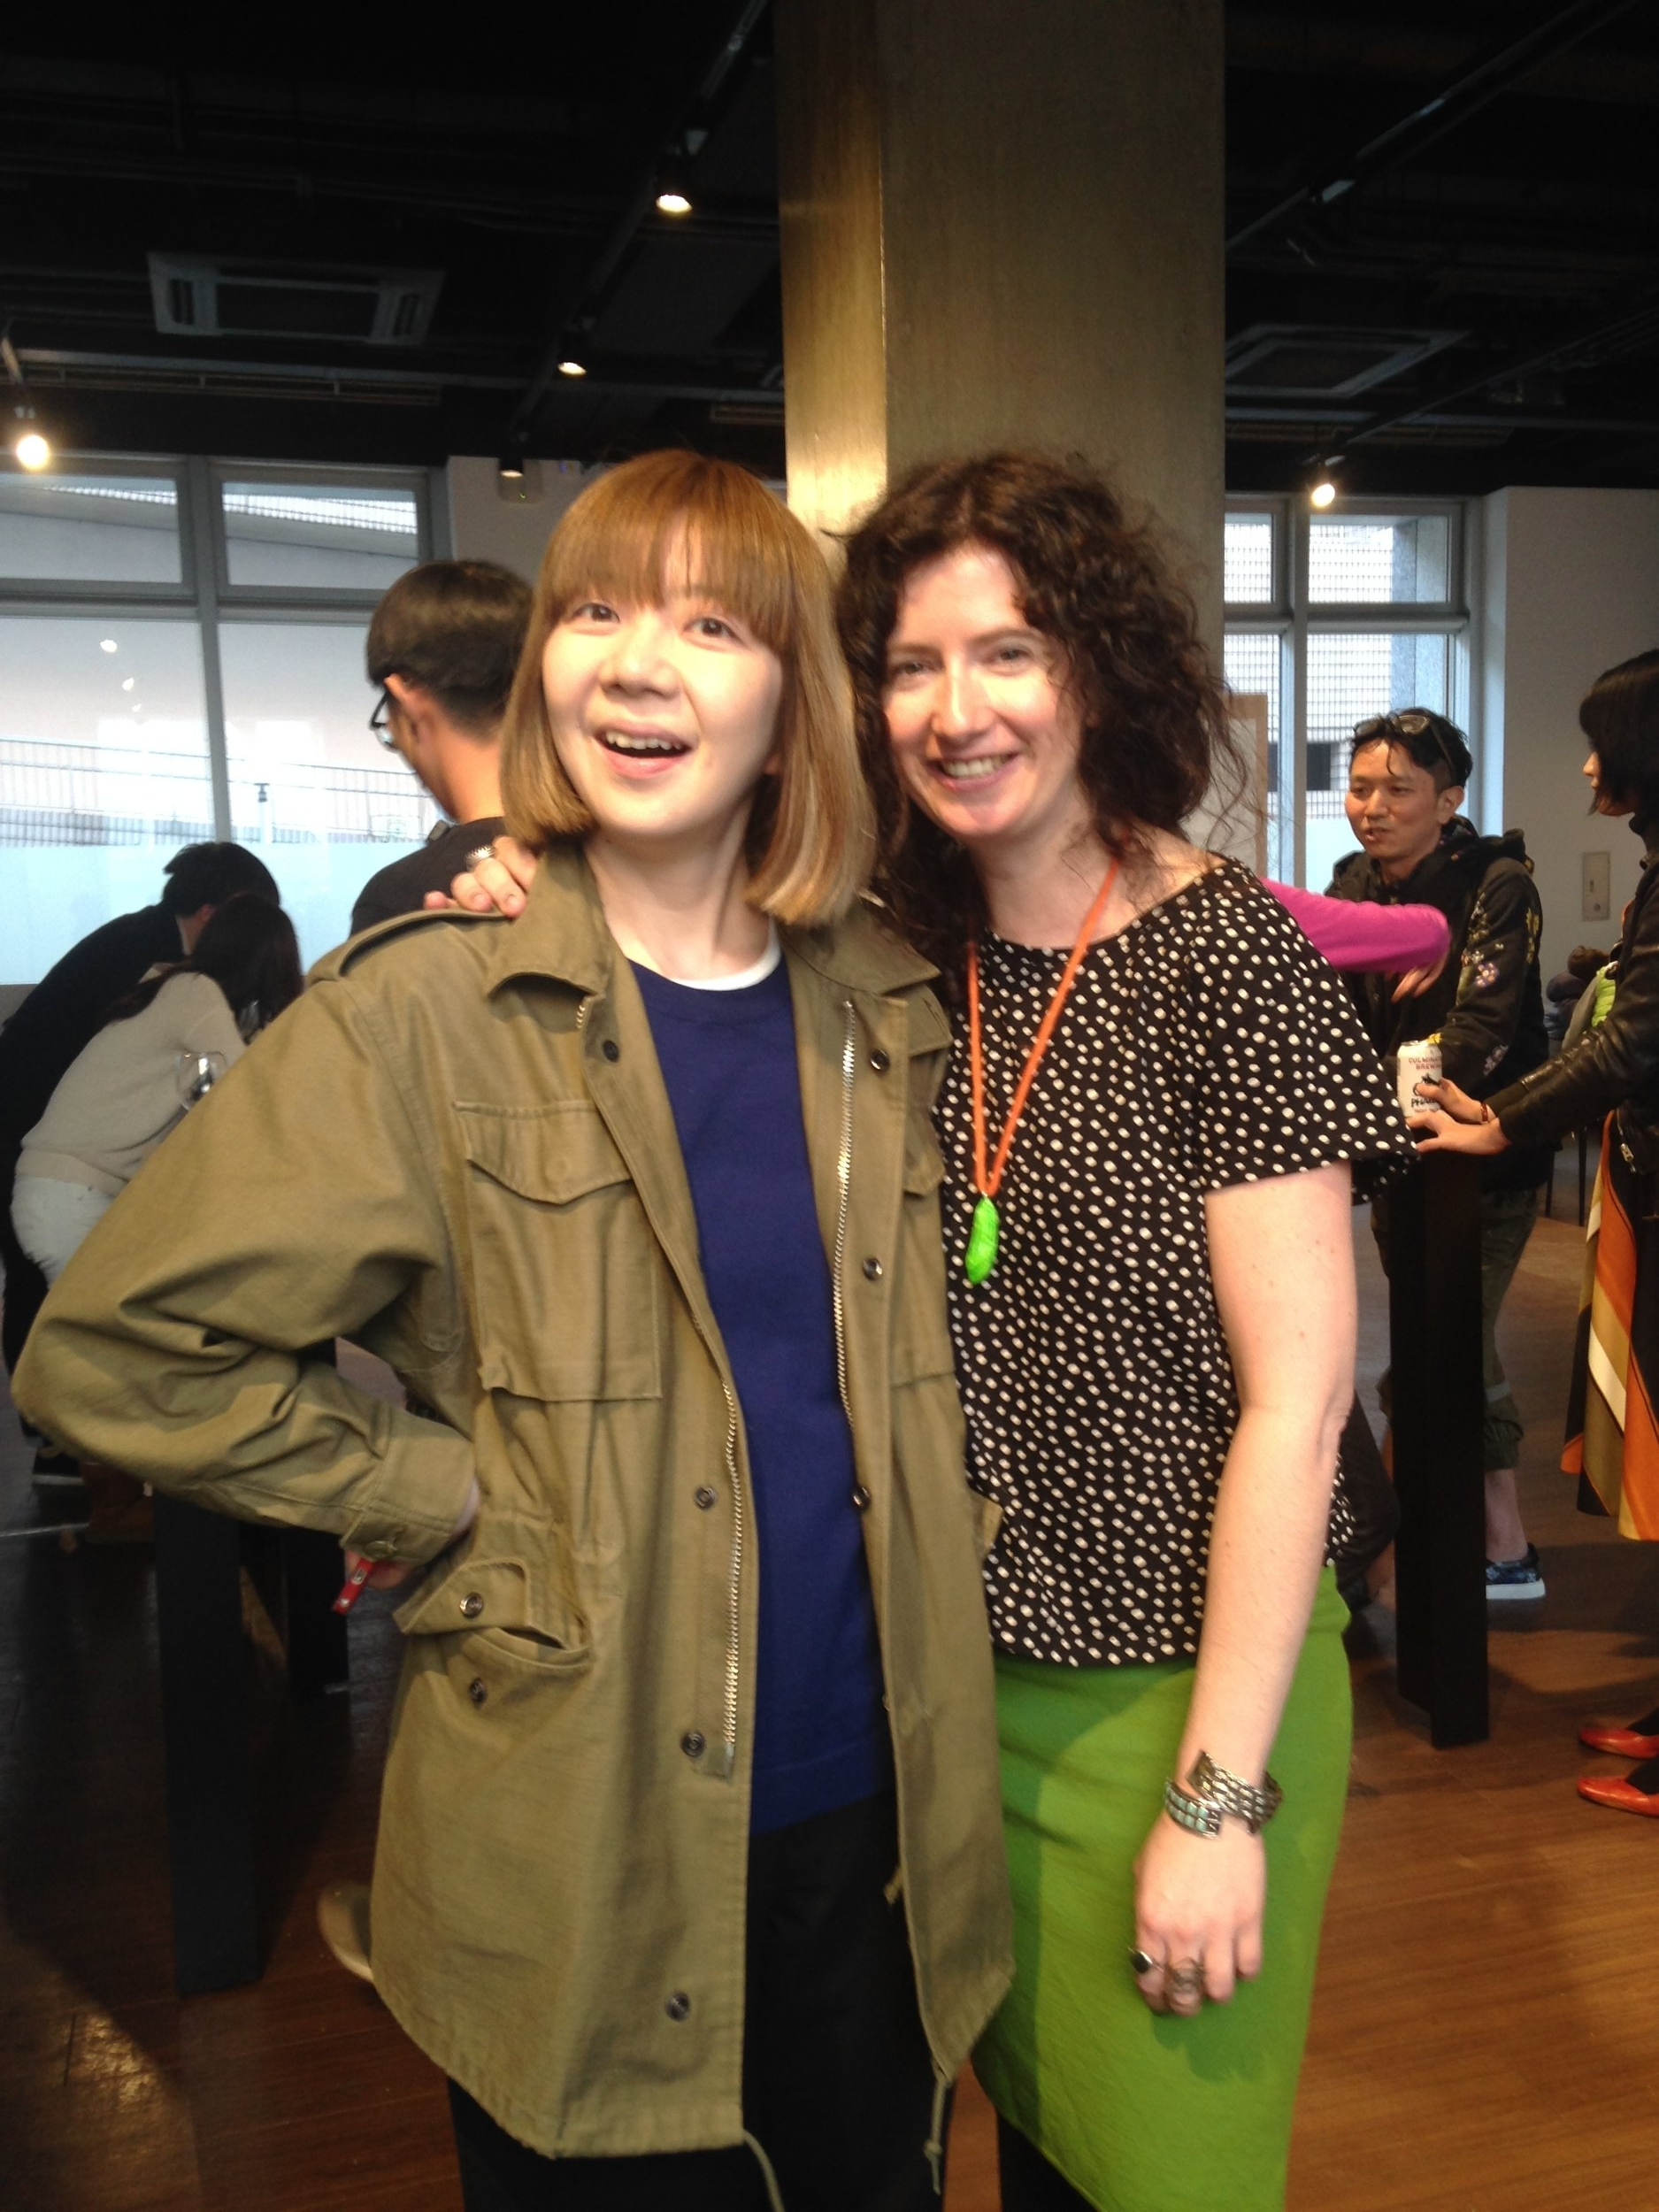 Me and my friend Etsuyo Okajima after our Q&A. I love Etsuyo. She comes to Portland often.